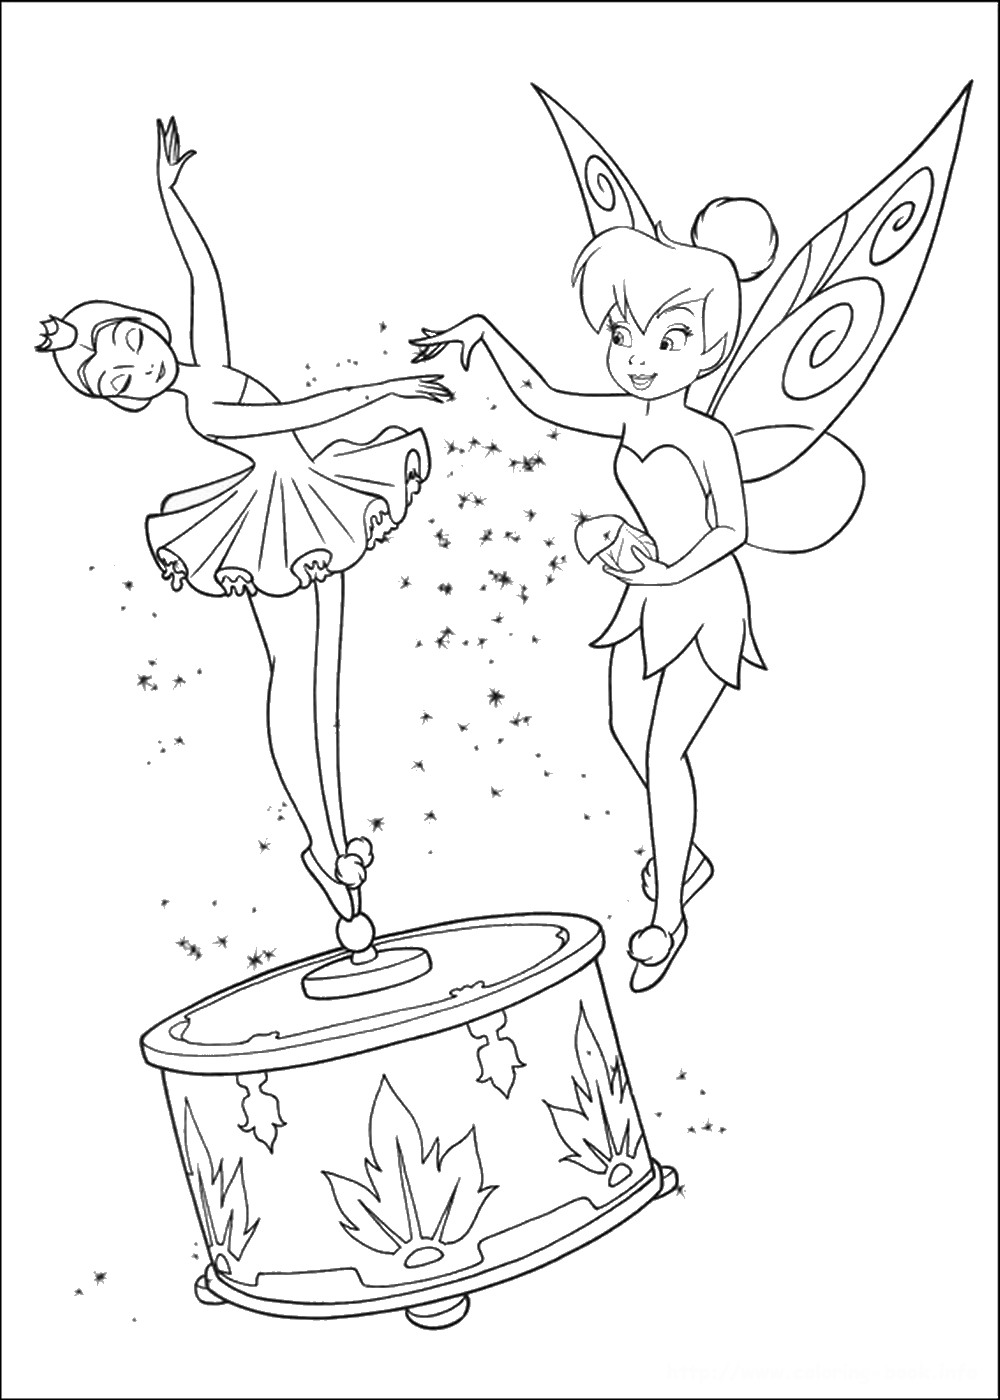 tinkerbell coloring pages free printable coloring pages tinkerbell coloring pages and clip art printable tinkerbell pages coloring free